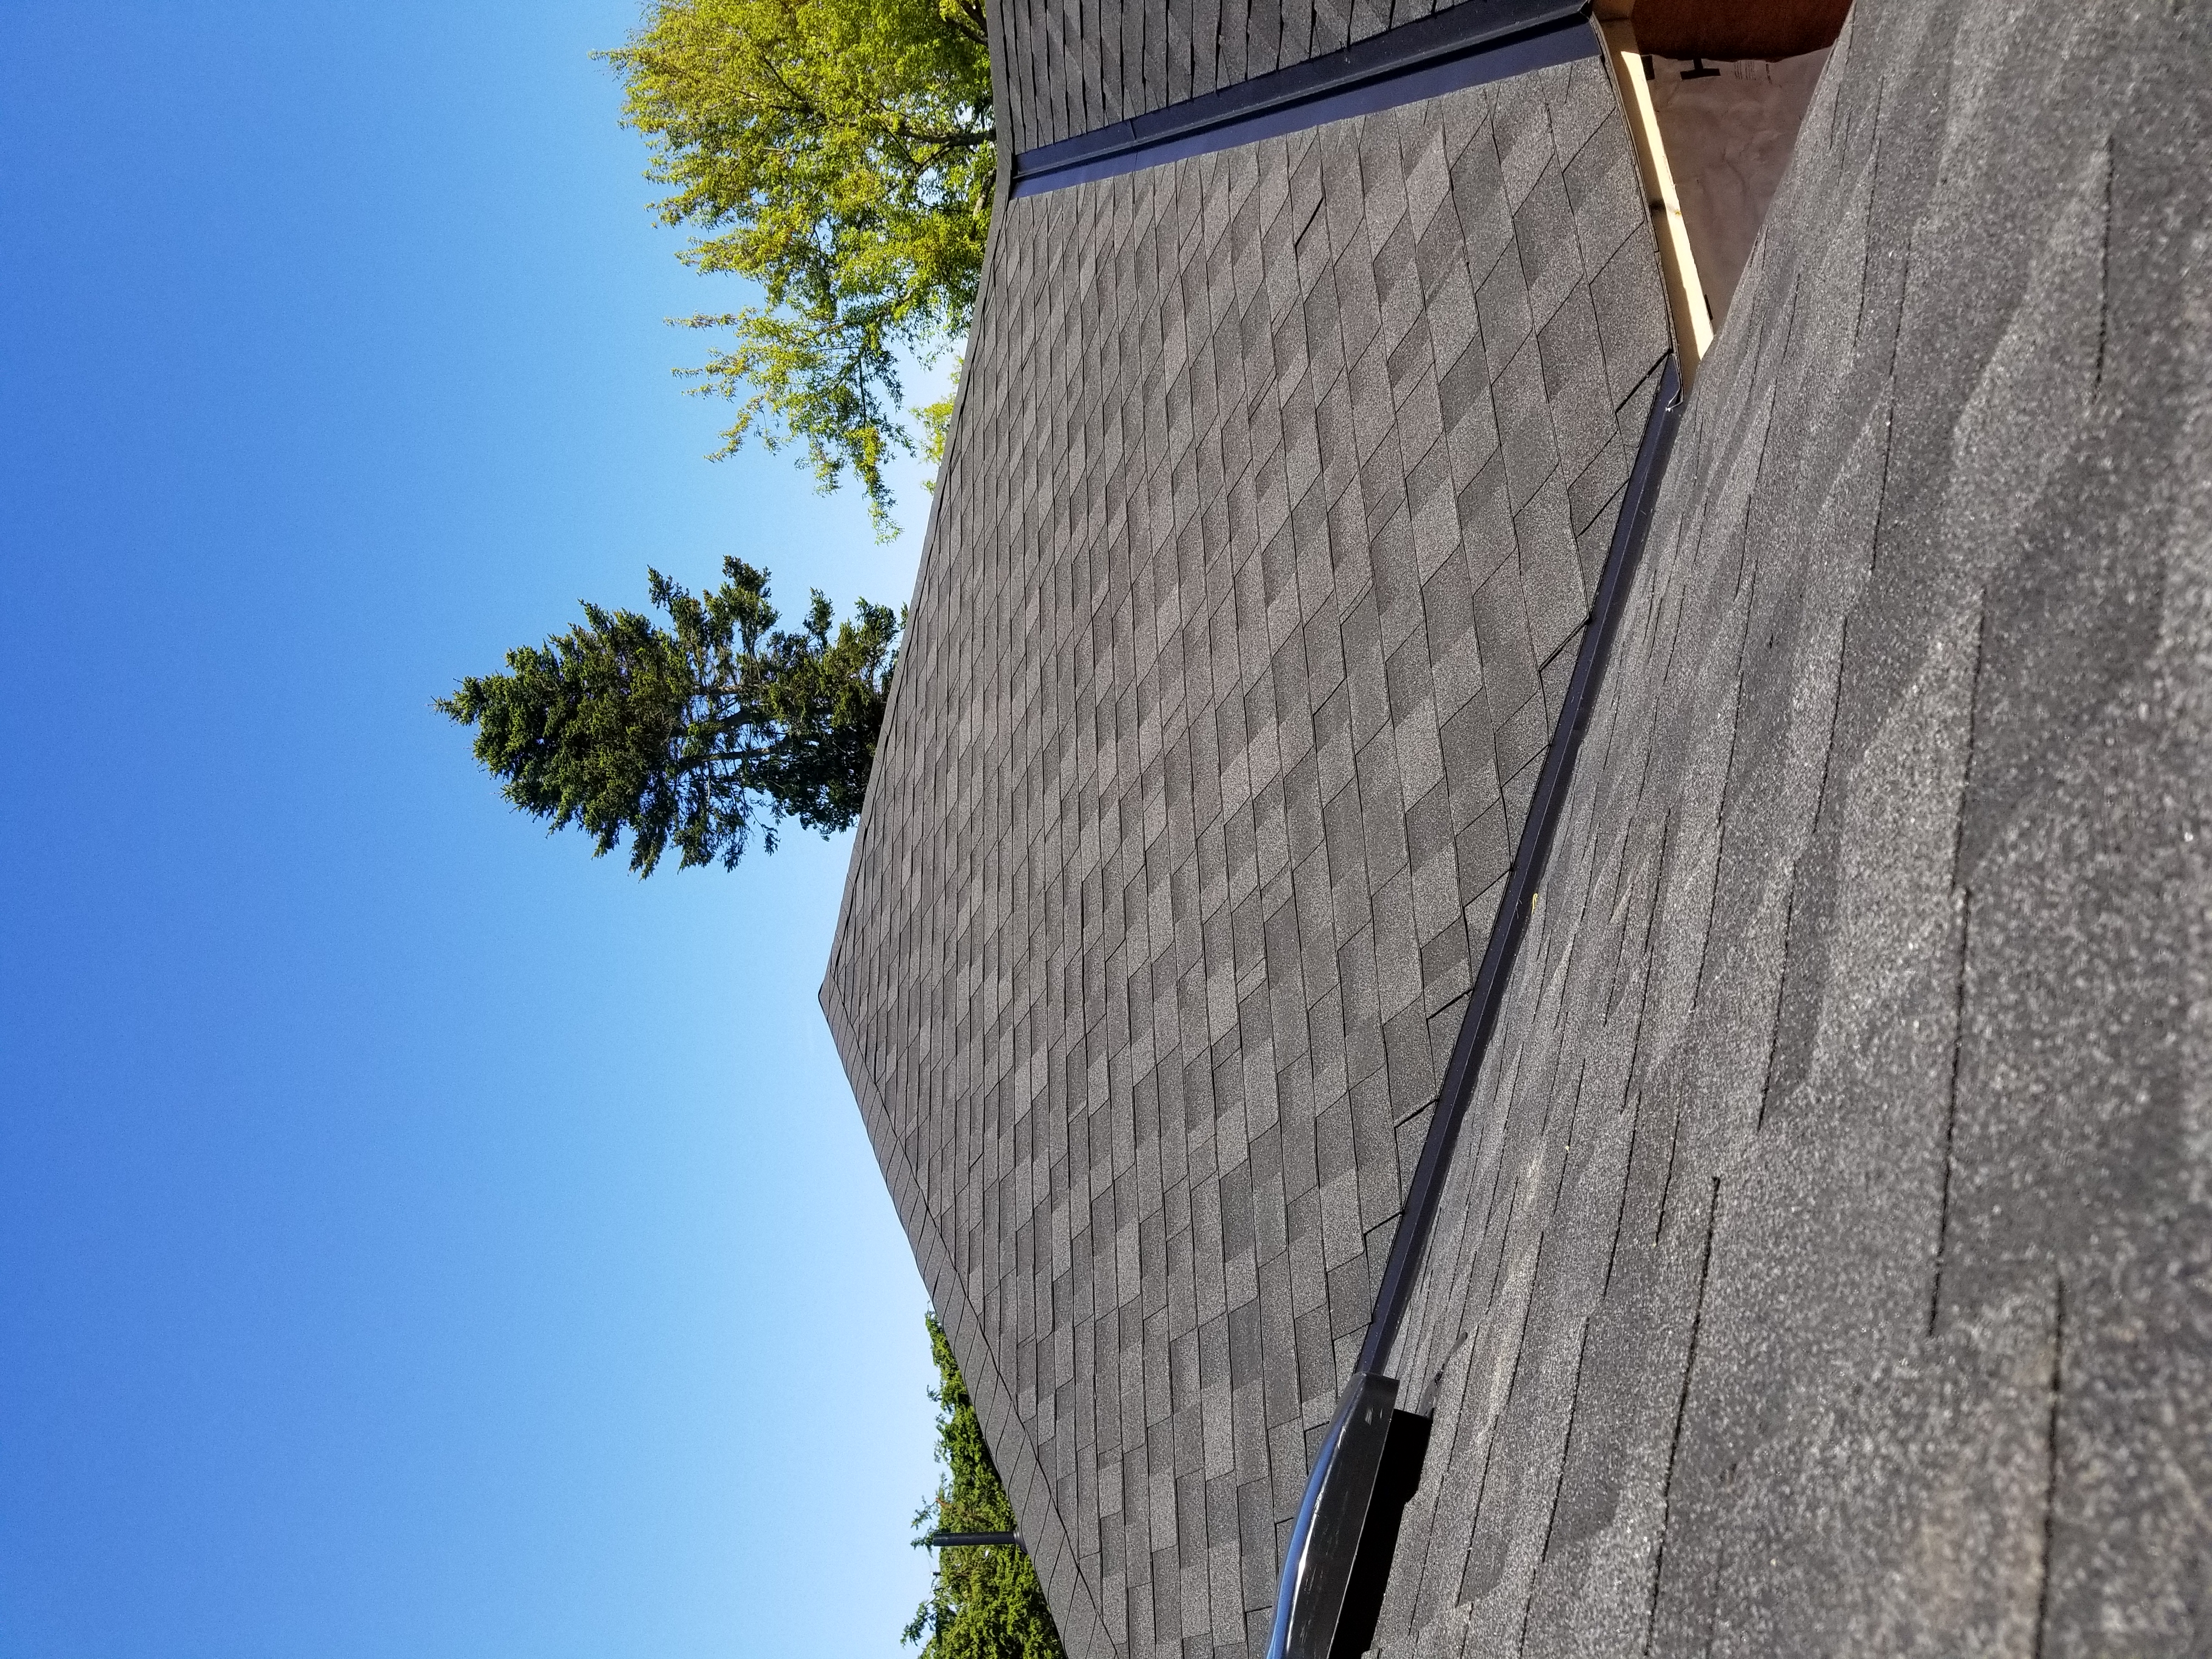 New replacement roof